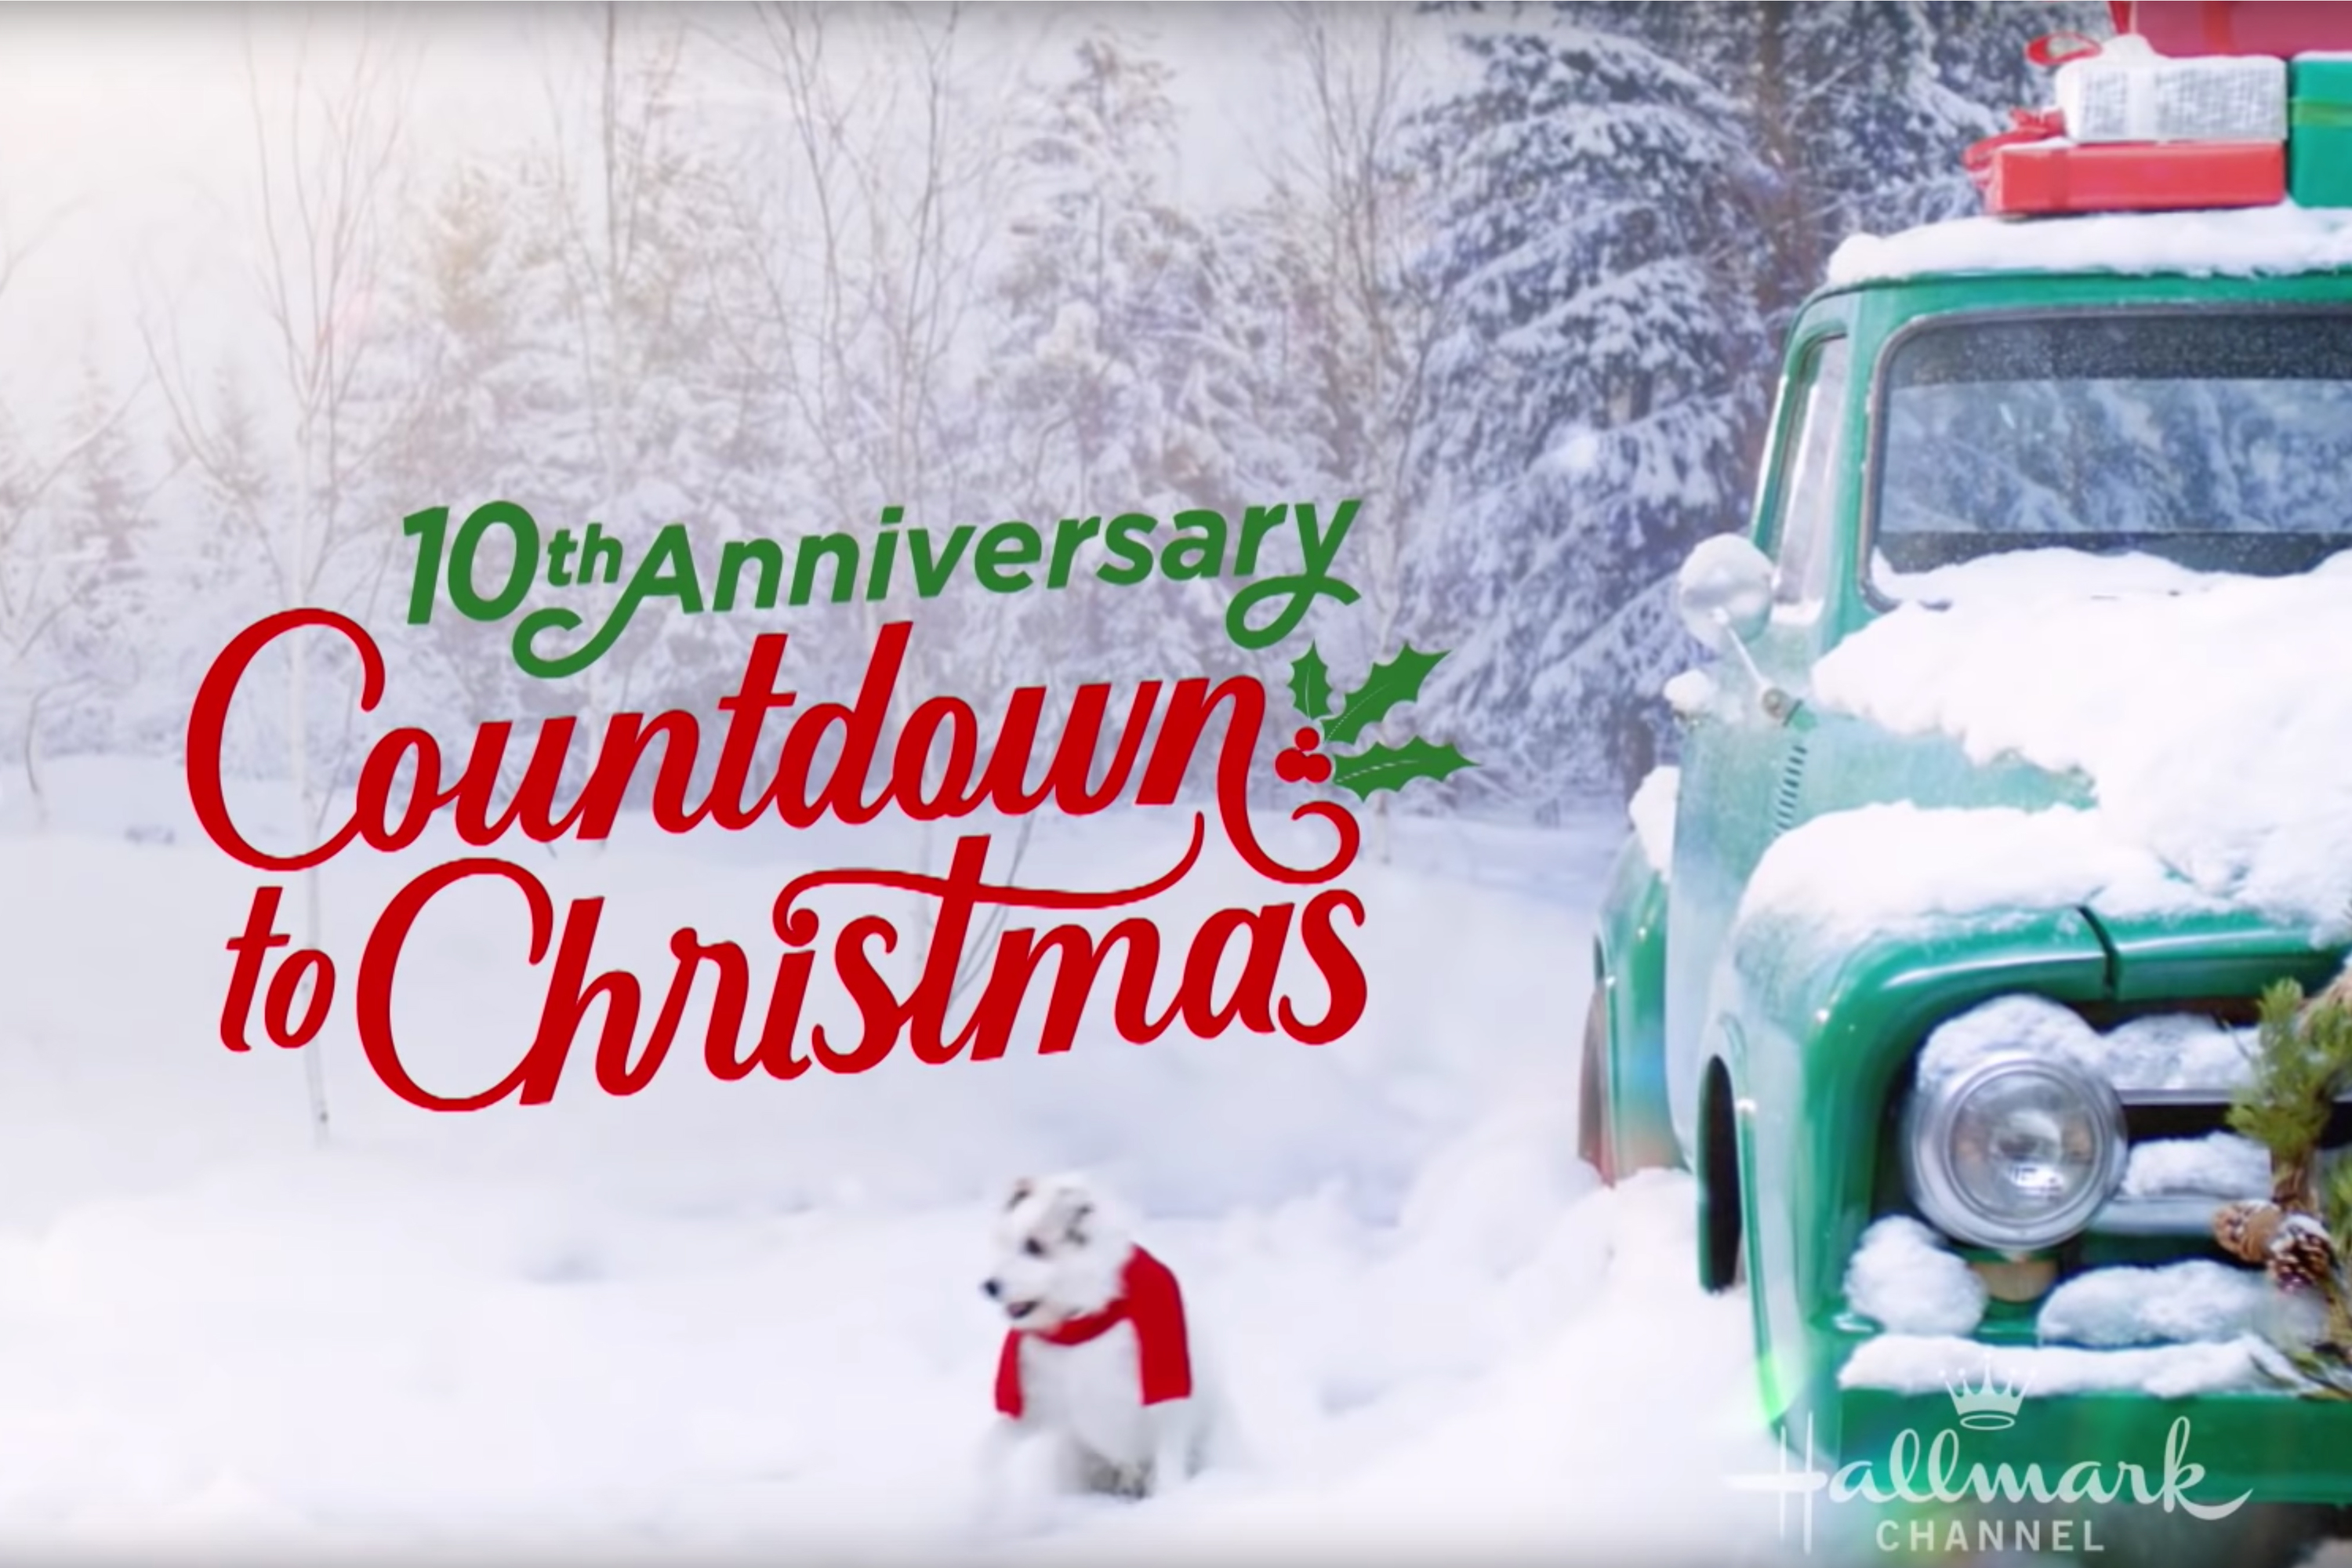 Here's what Hallmark Channel advertisers actually get out of the 'Countdown to Christmas'